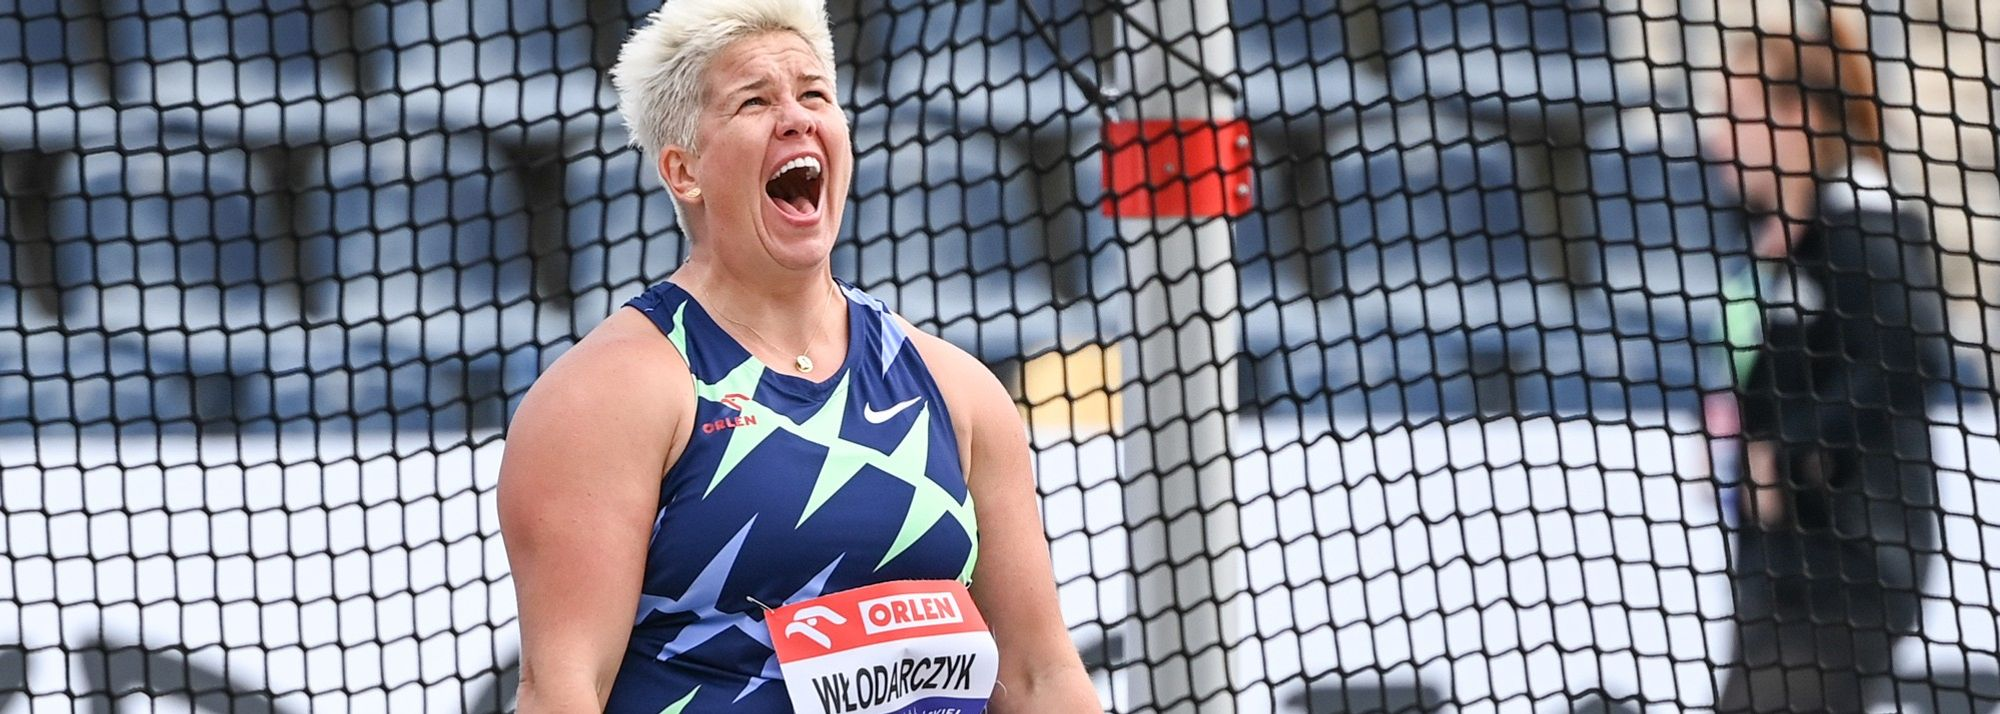 Poland's throws legends impress on home soil, while 18-year-old Christine Mboma runs world-leading 48.54.